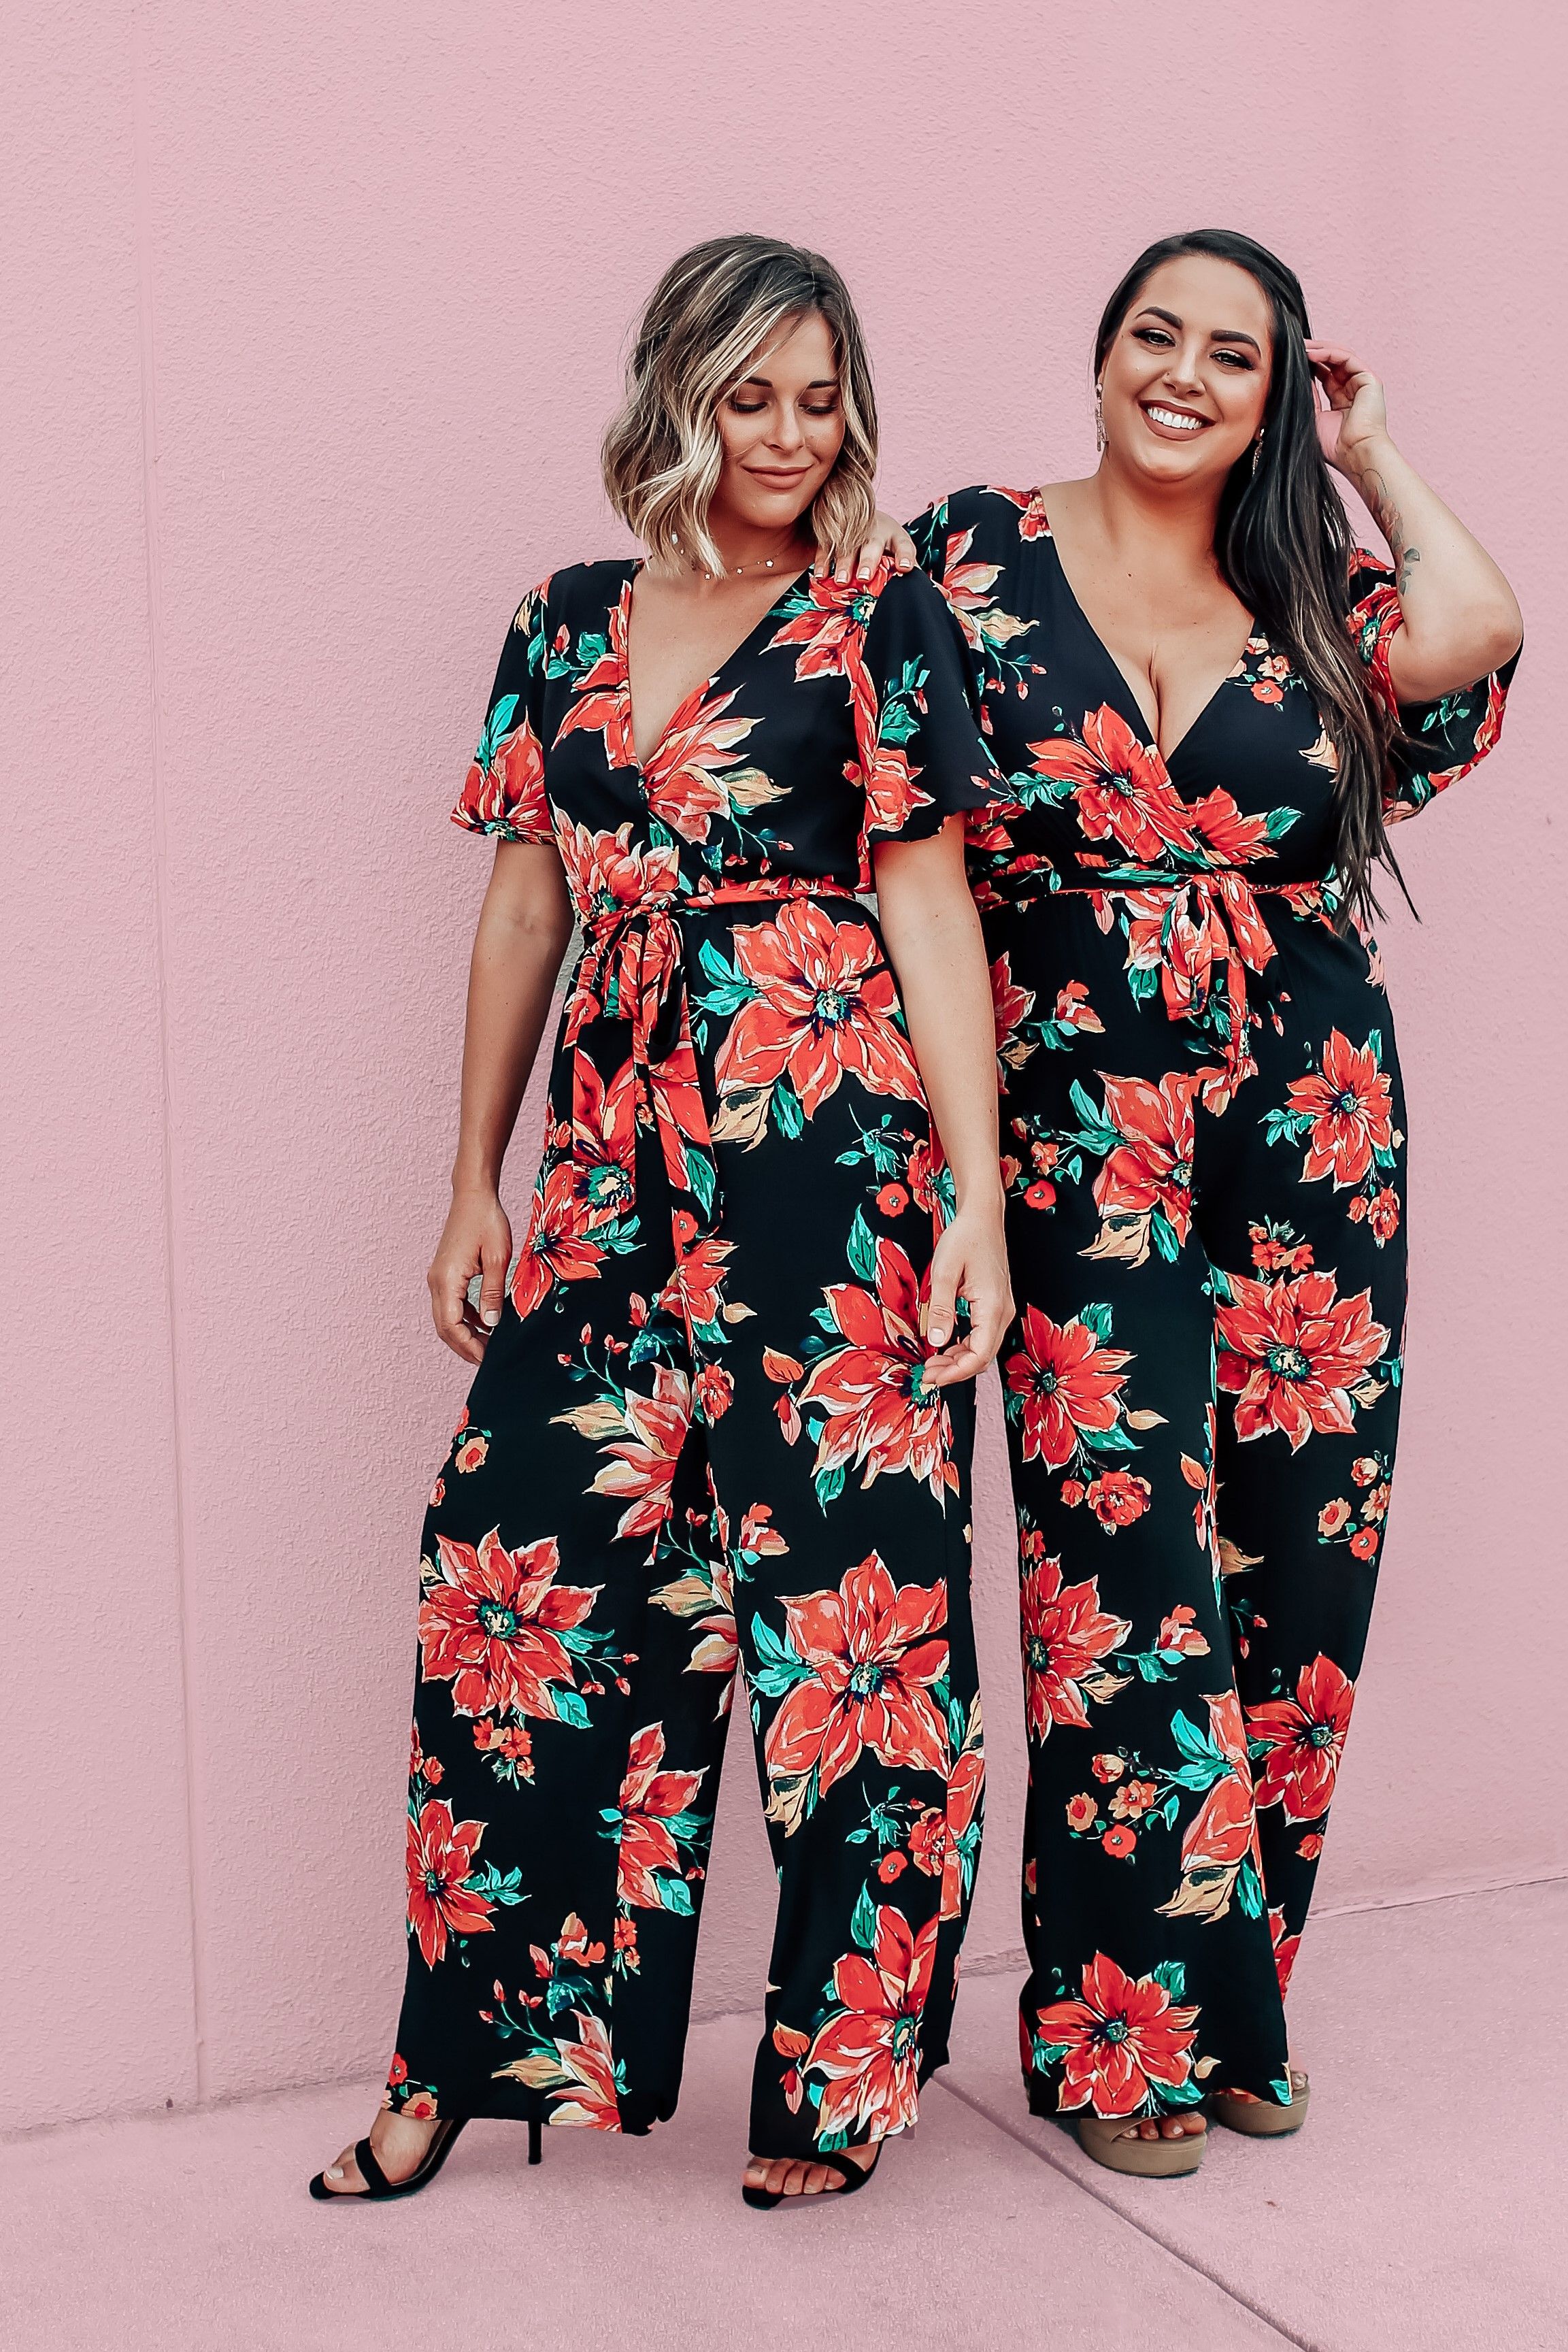 MAVERICK EXCLUSIVE! BLACK BACKGROUND WITH LARGE RED-TONES FLORAL PATTERN. WIDE LEG, ELASTIC WAIST, REMOVABLE TIE. FLOWY SHORT SLEEVES. TWO BUTTON DETAIL ON BACK. 100% POLYESTER.